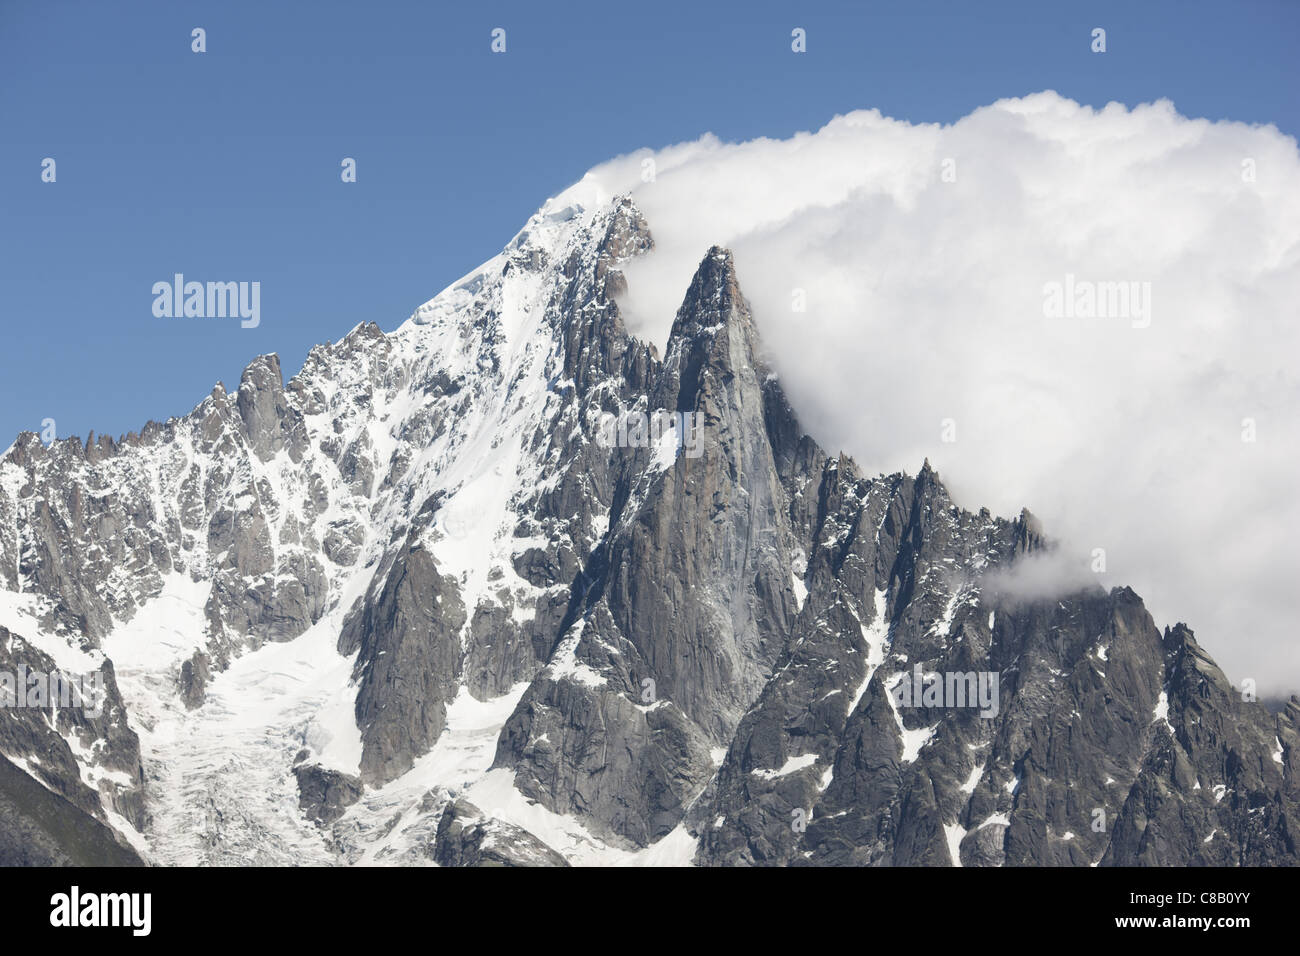 AIGUILLE VERTE (4122m) & LES DRUS (3754m) in the Mont Blanc Massif. A downwind low pressure triggers the BANNER - Stock Image